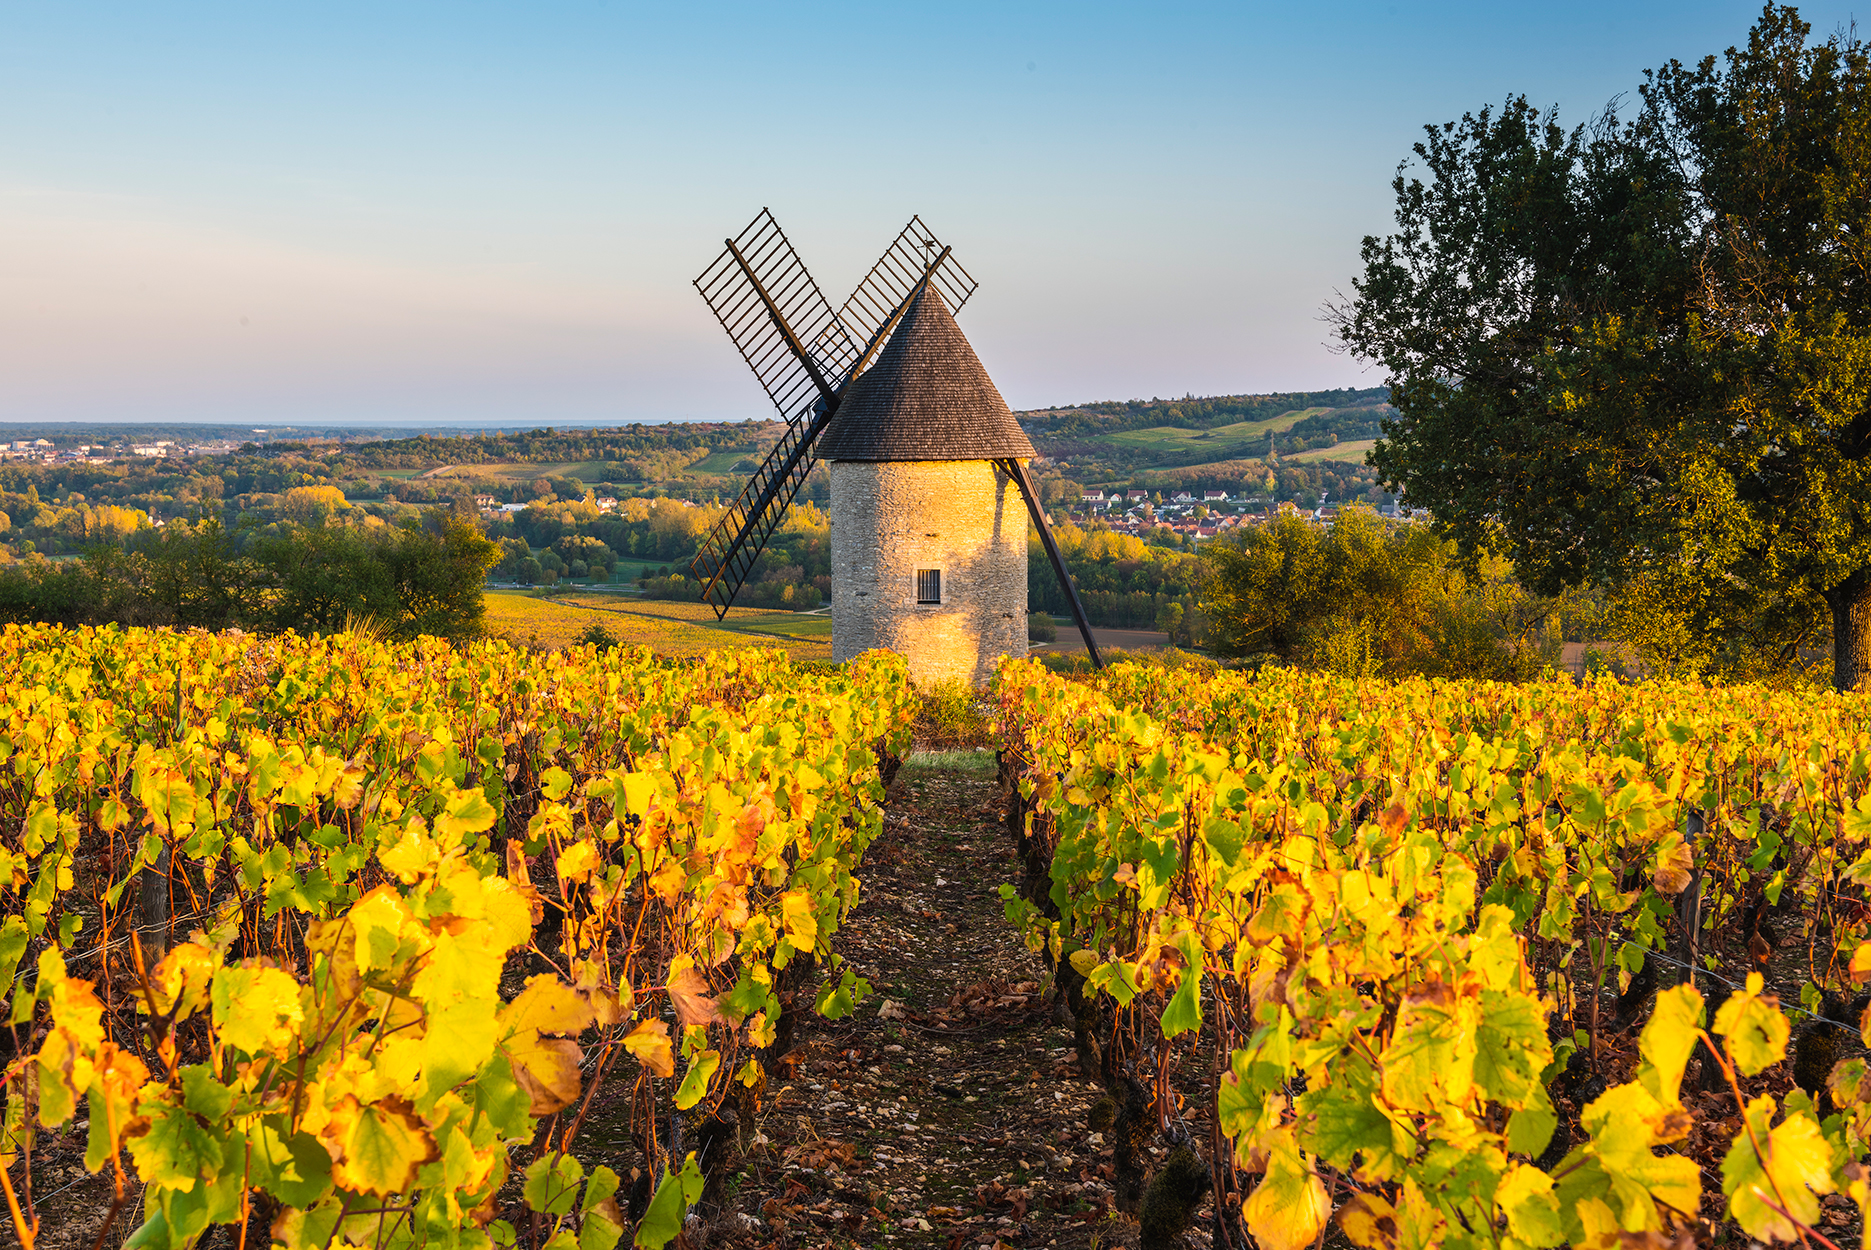 France, Bourgogne-Franche-Comte, Burgundy, Cote-d'Or, Santenay. Windmill and vineyards.